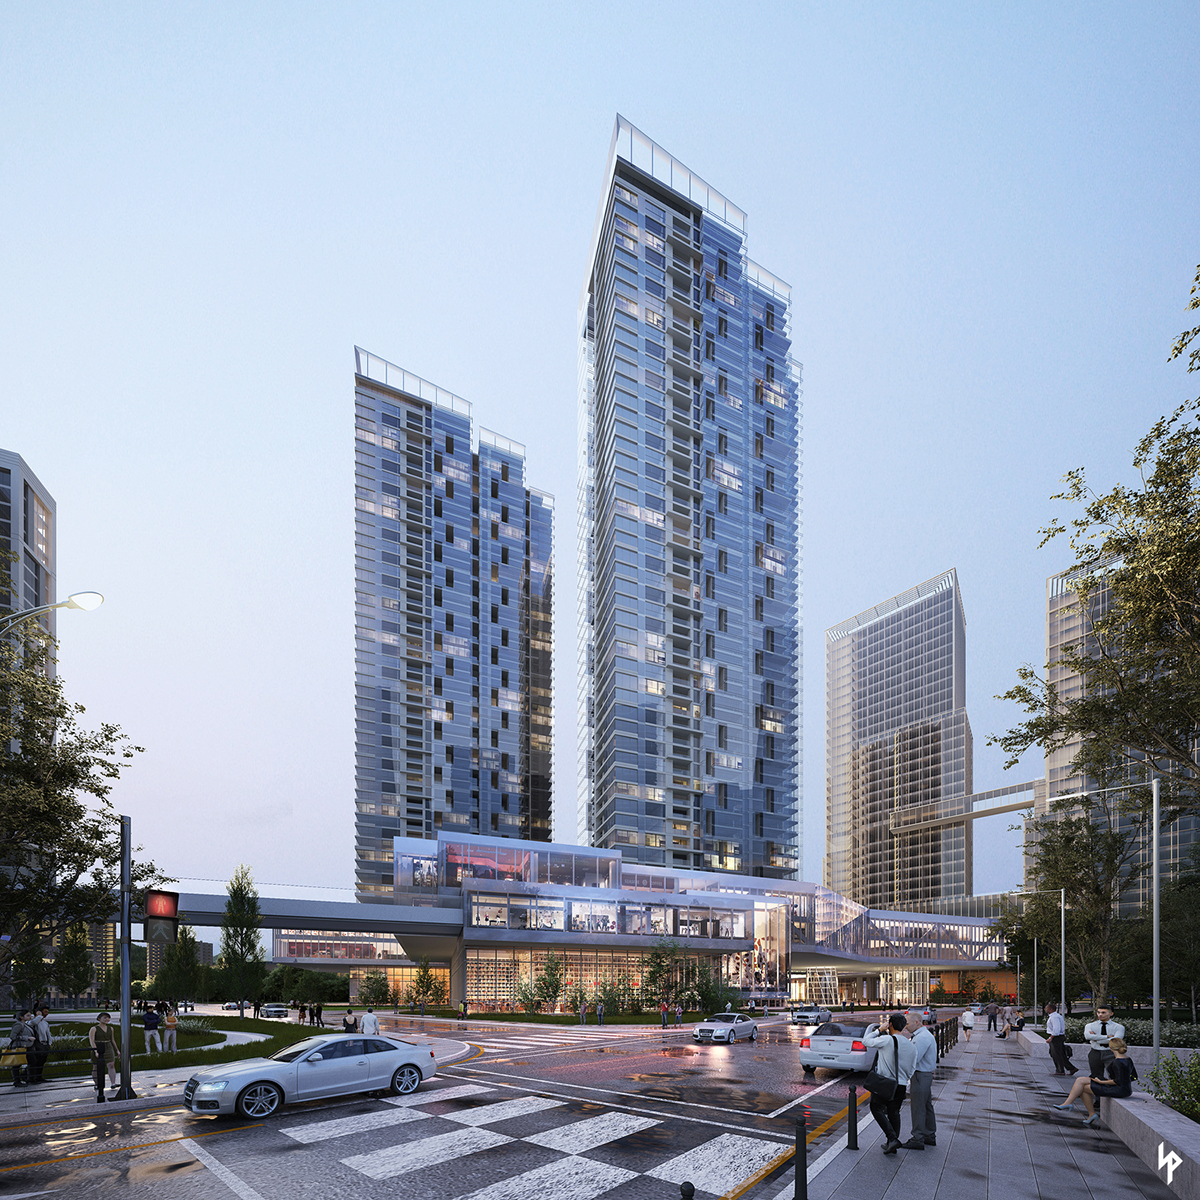 Jayang 1-dong Redevelopment Project